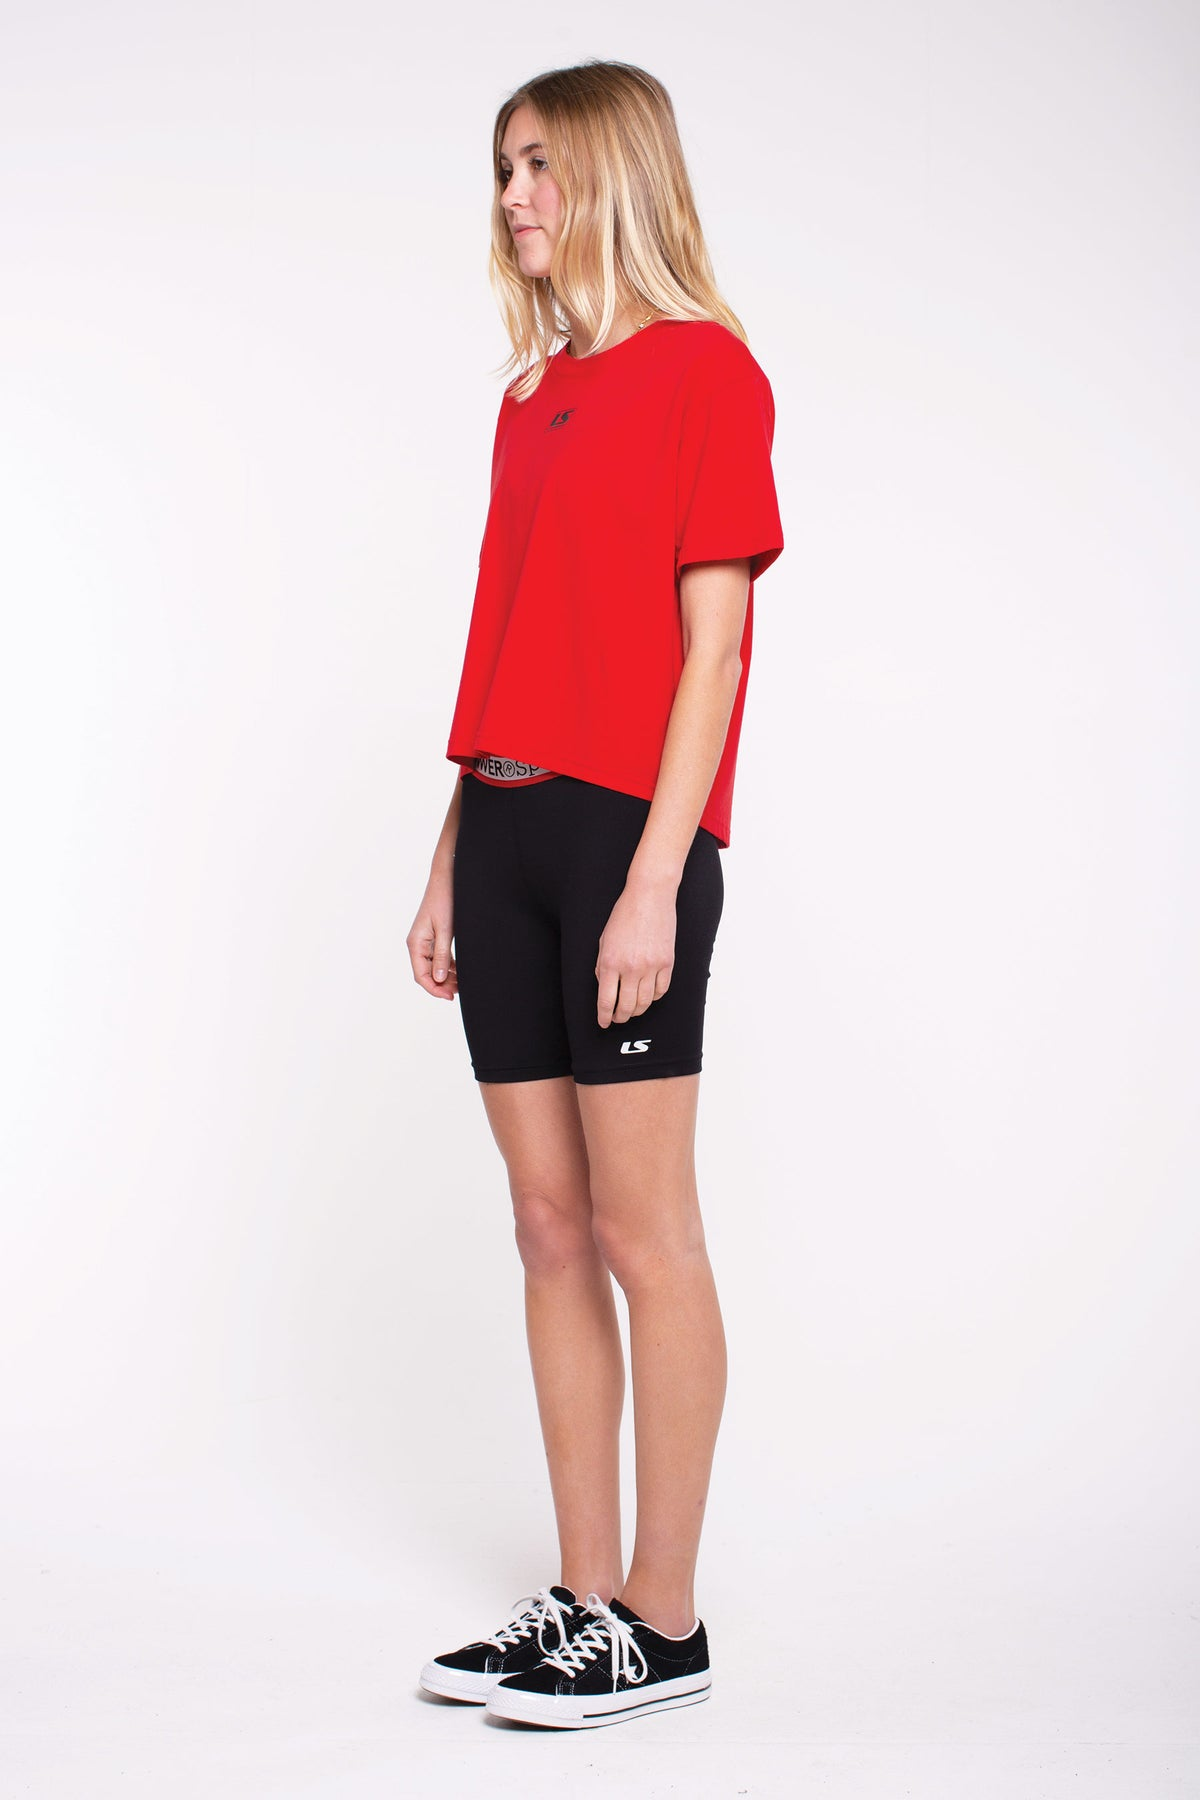 Hurdle Gym Tee - Red